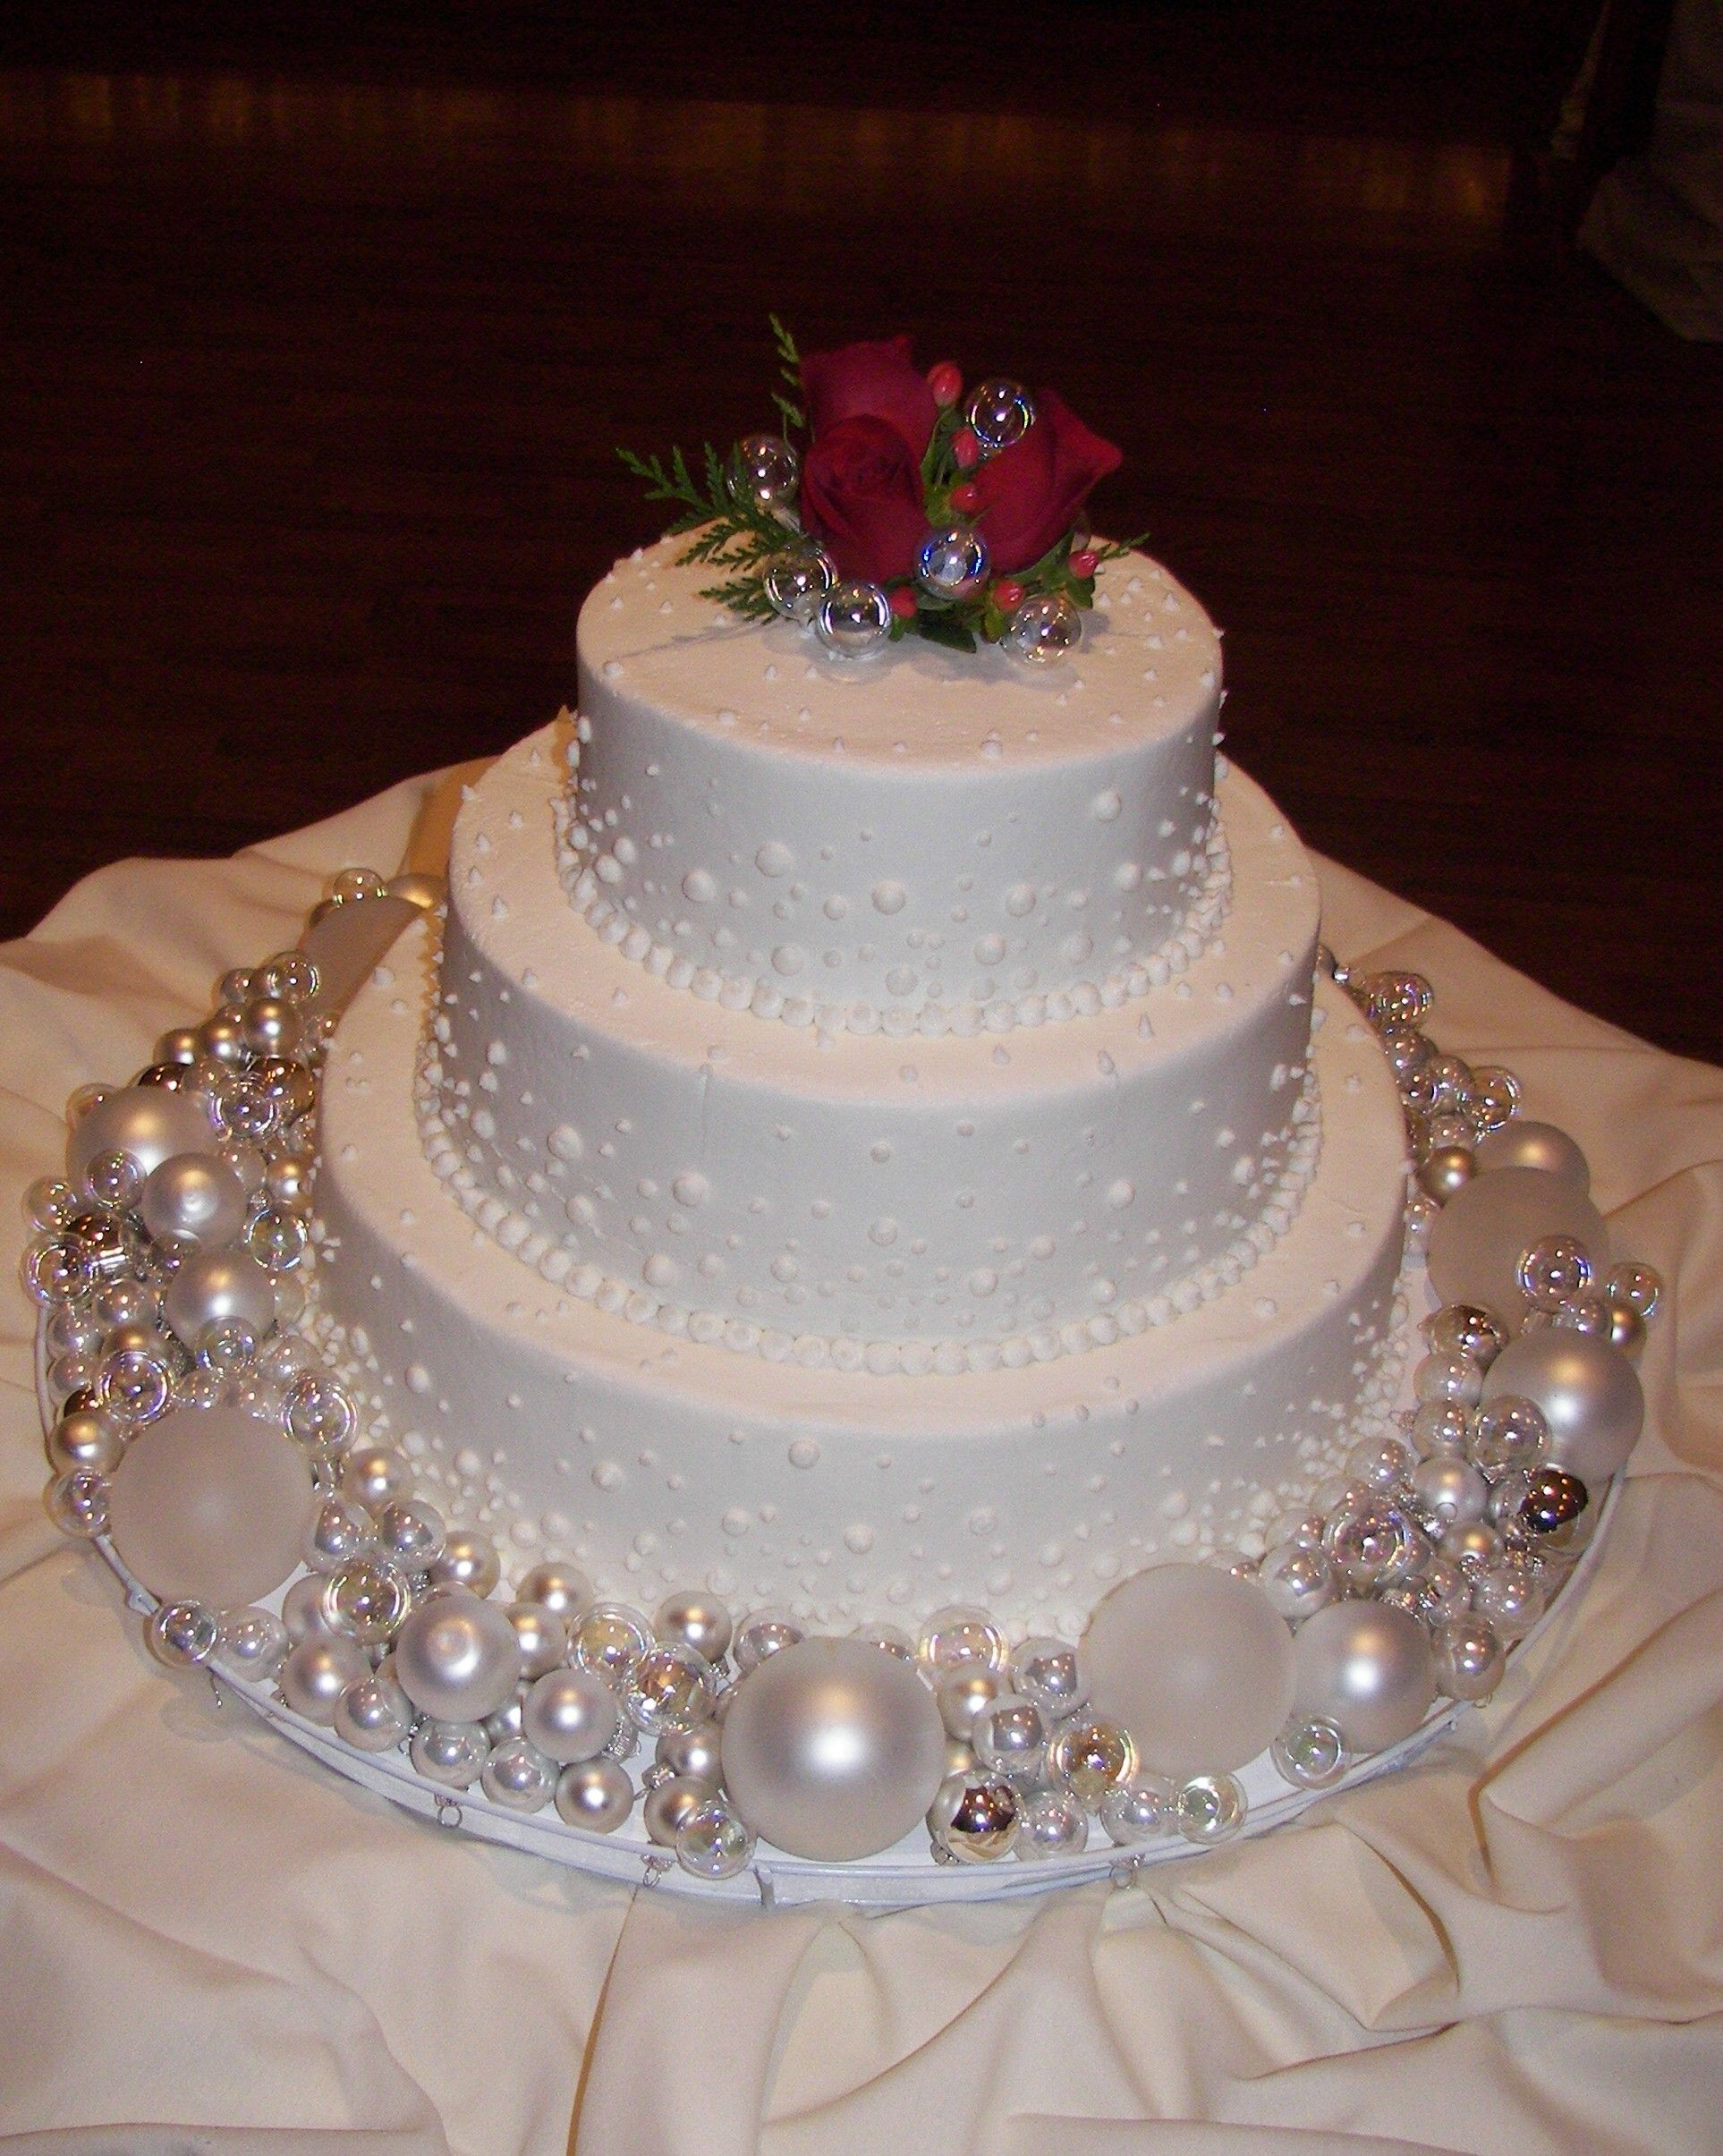 Bubbles or Bulbs Wedding cake A Wedding cake inspired by